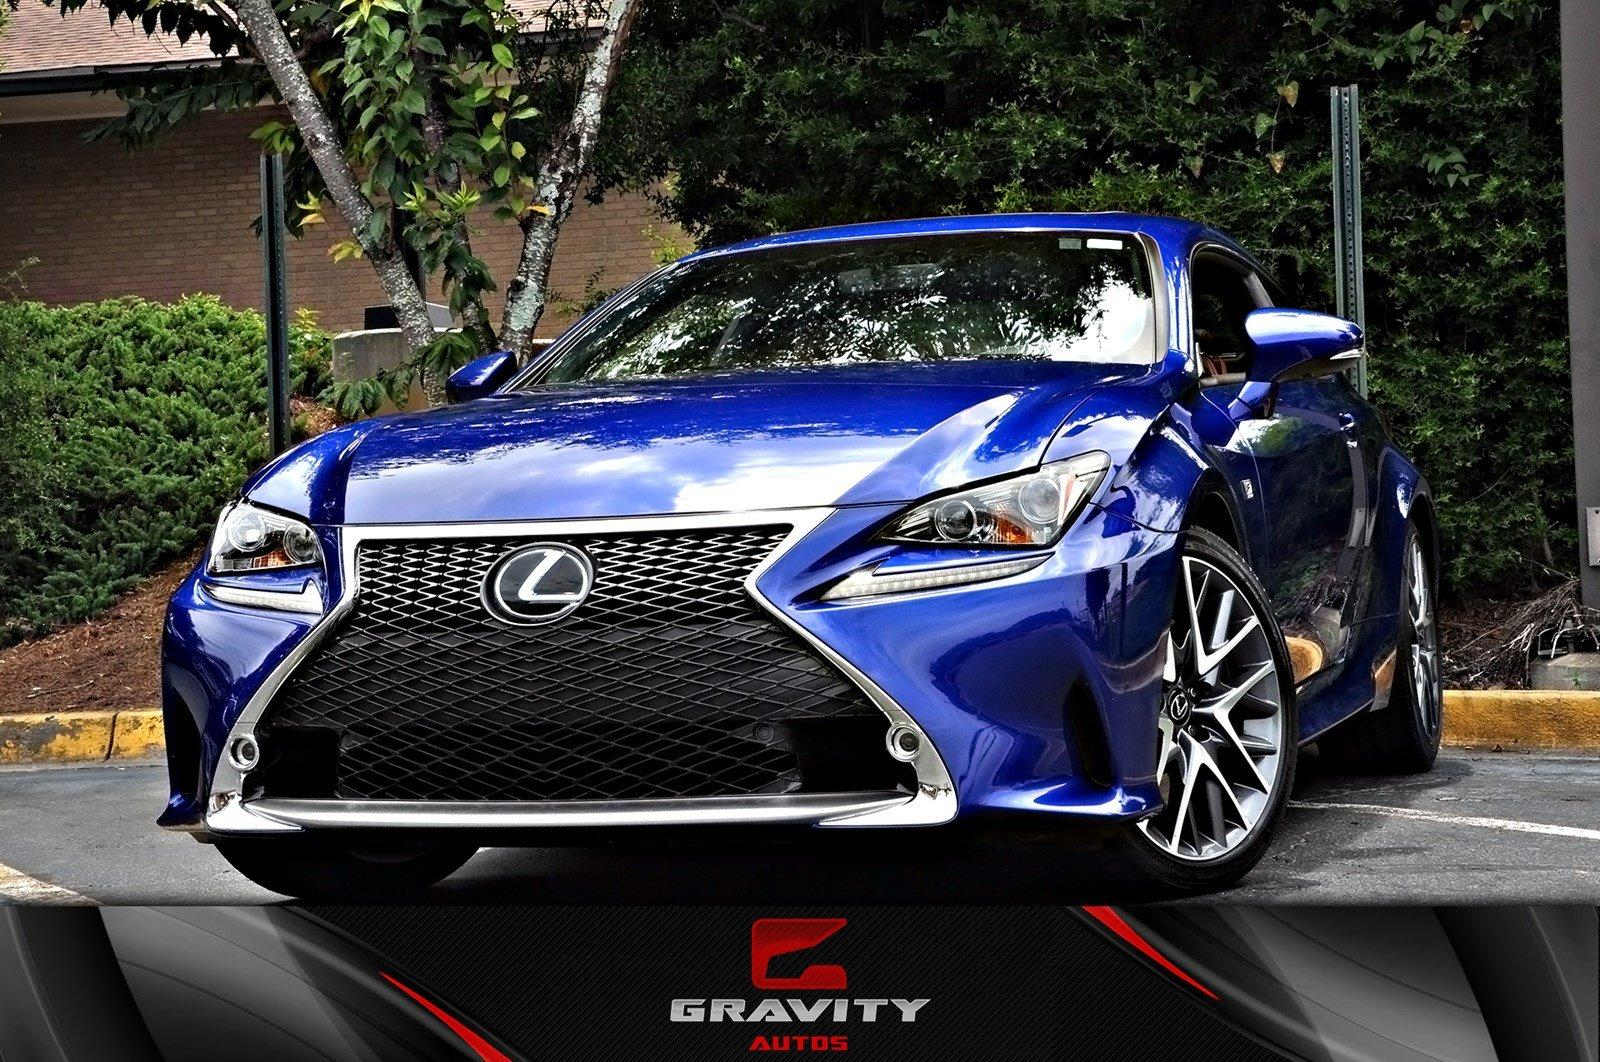 Lexus Rc 350 For Sale >> 2016 Lexus Rc 350 Rc 350 F Sport Stock 012845 For Sale